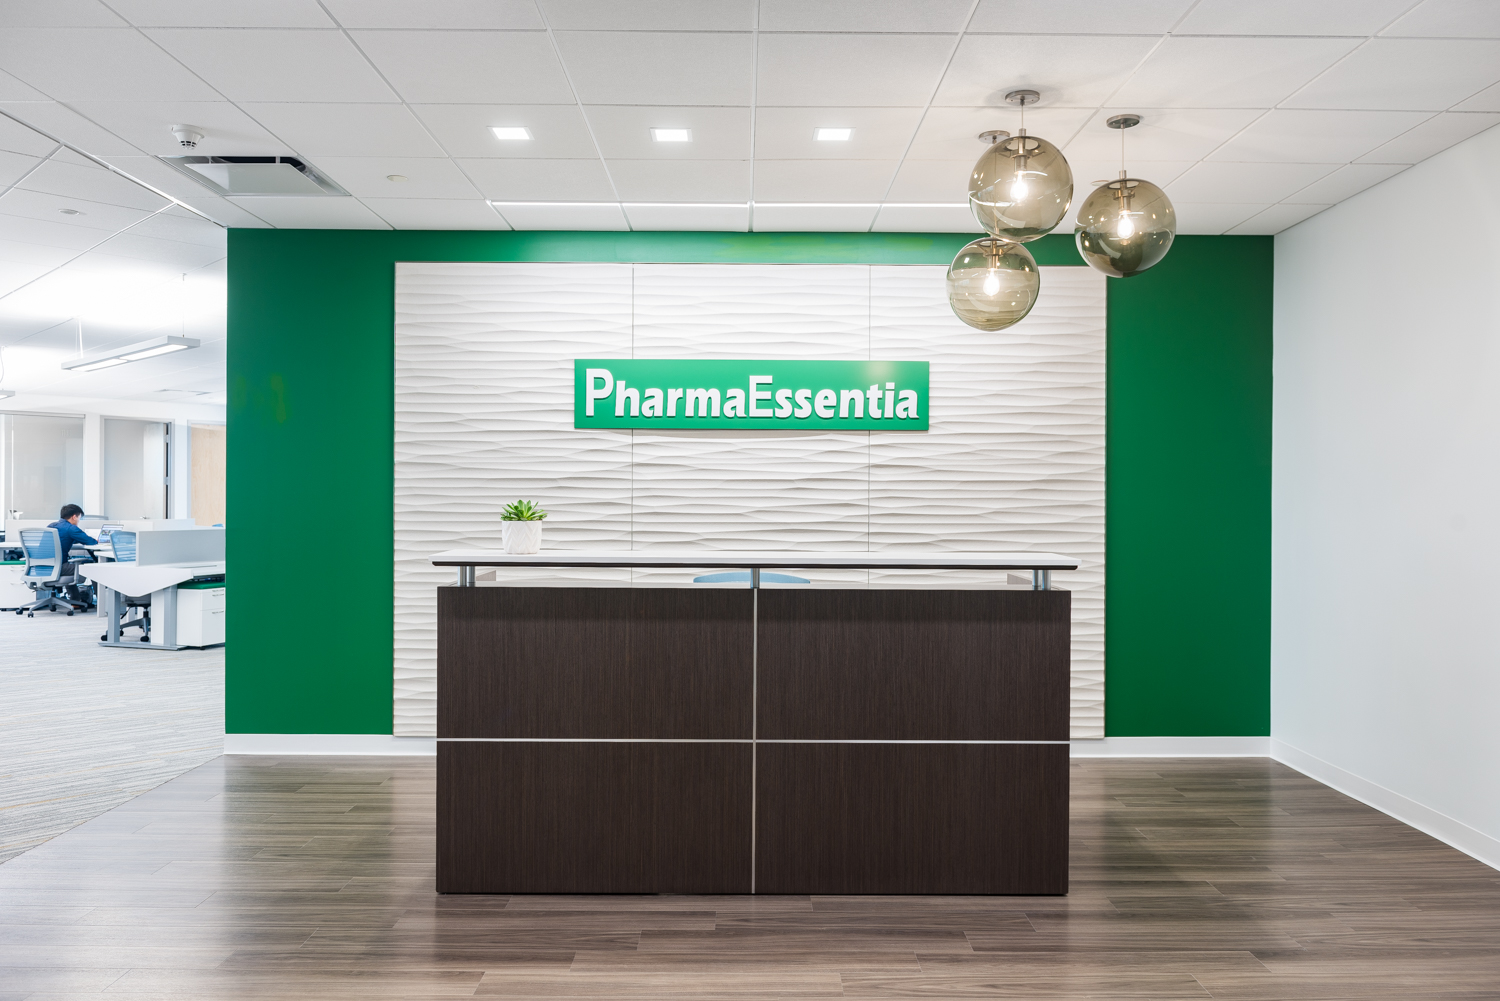 Project PharmaEssentia